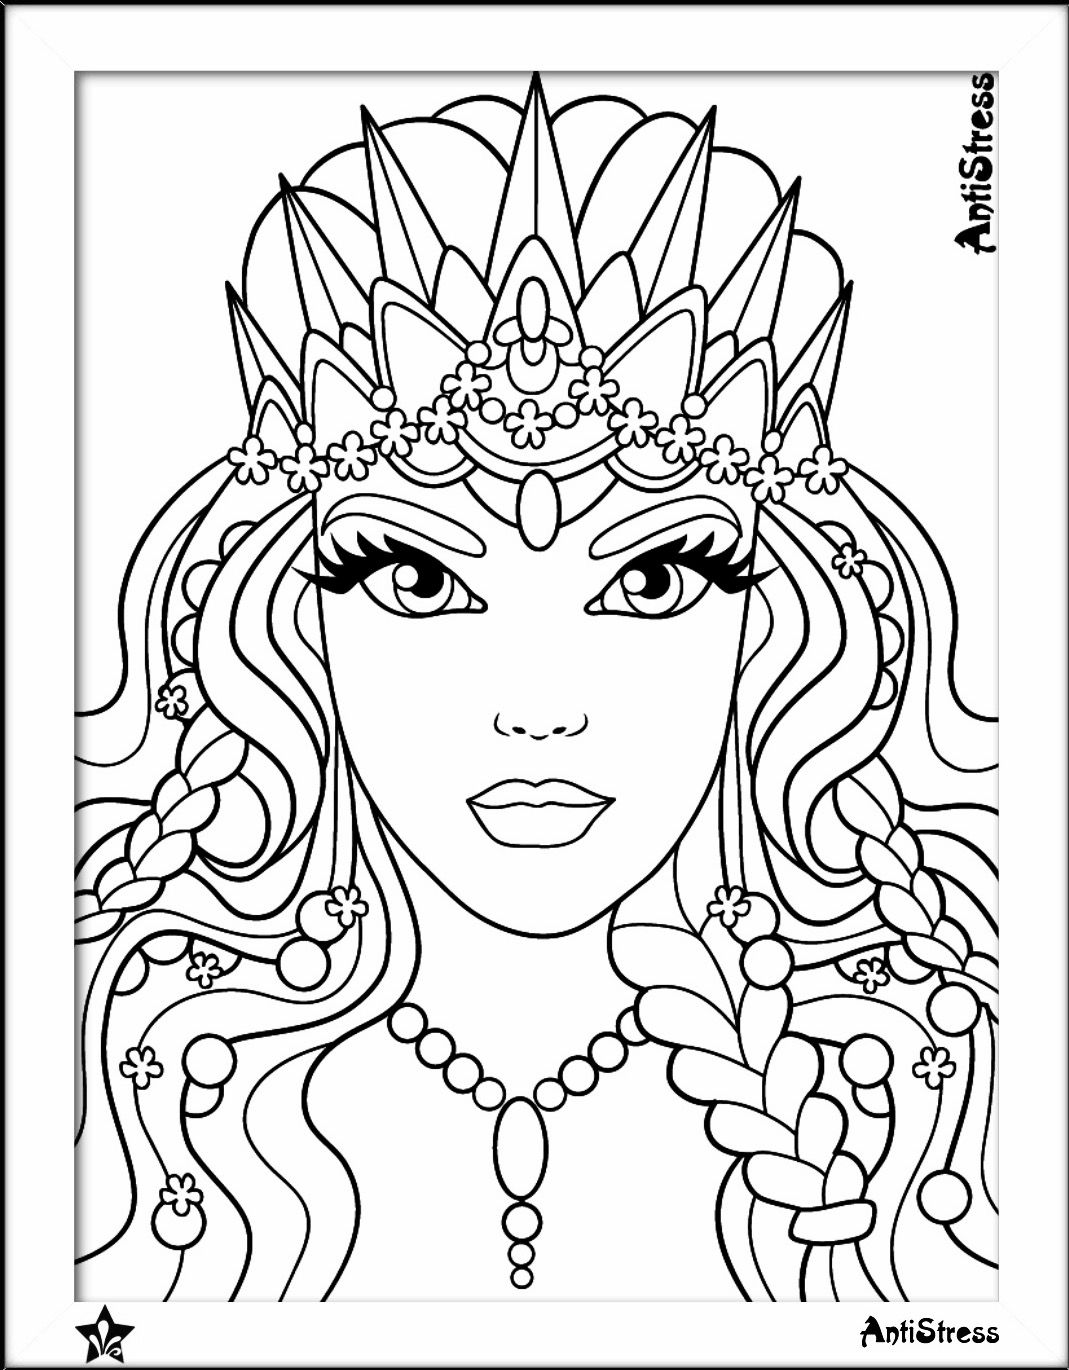 Pin by Margie Castillo on Print Out | People coloring pages, Adult ... | 1370x1069